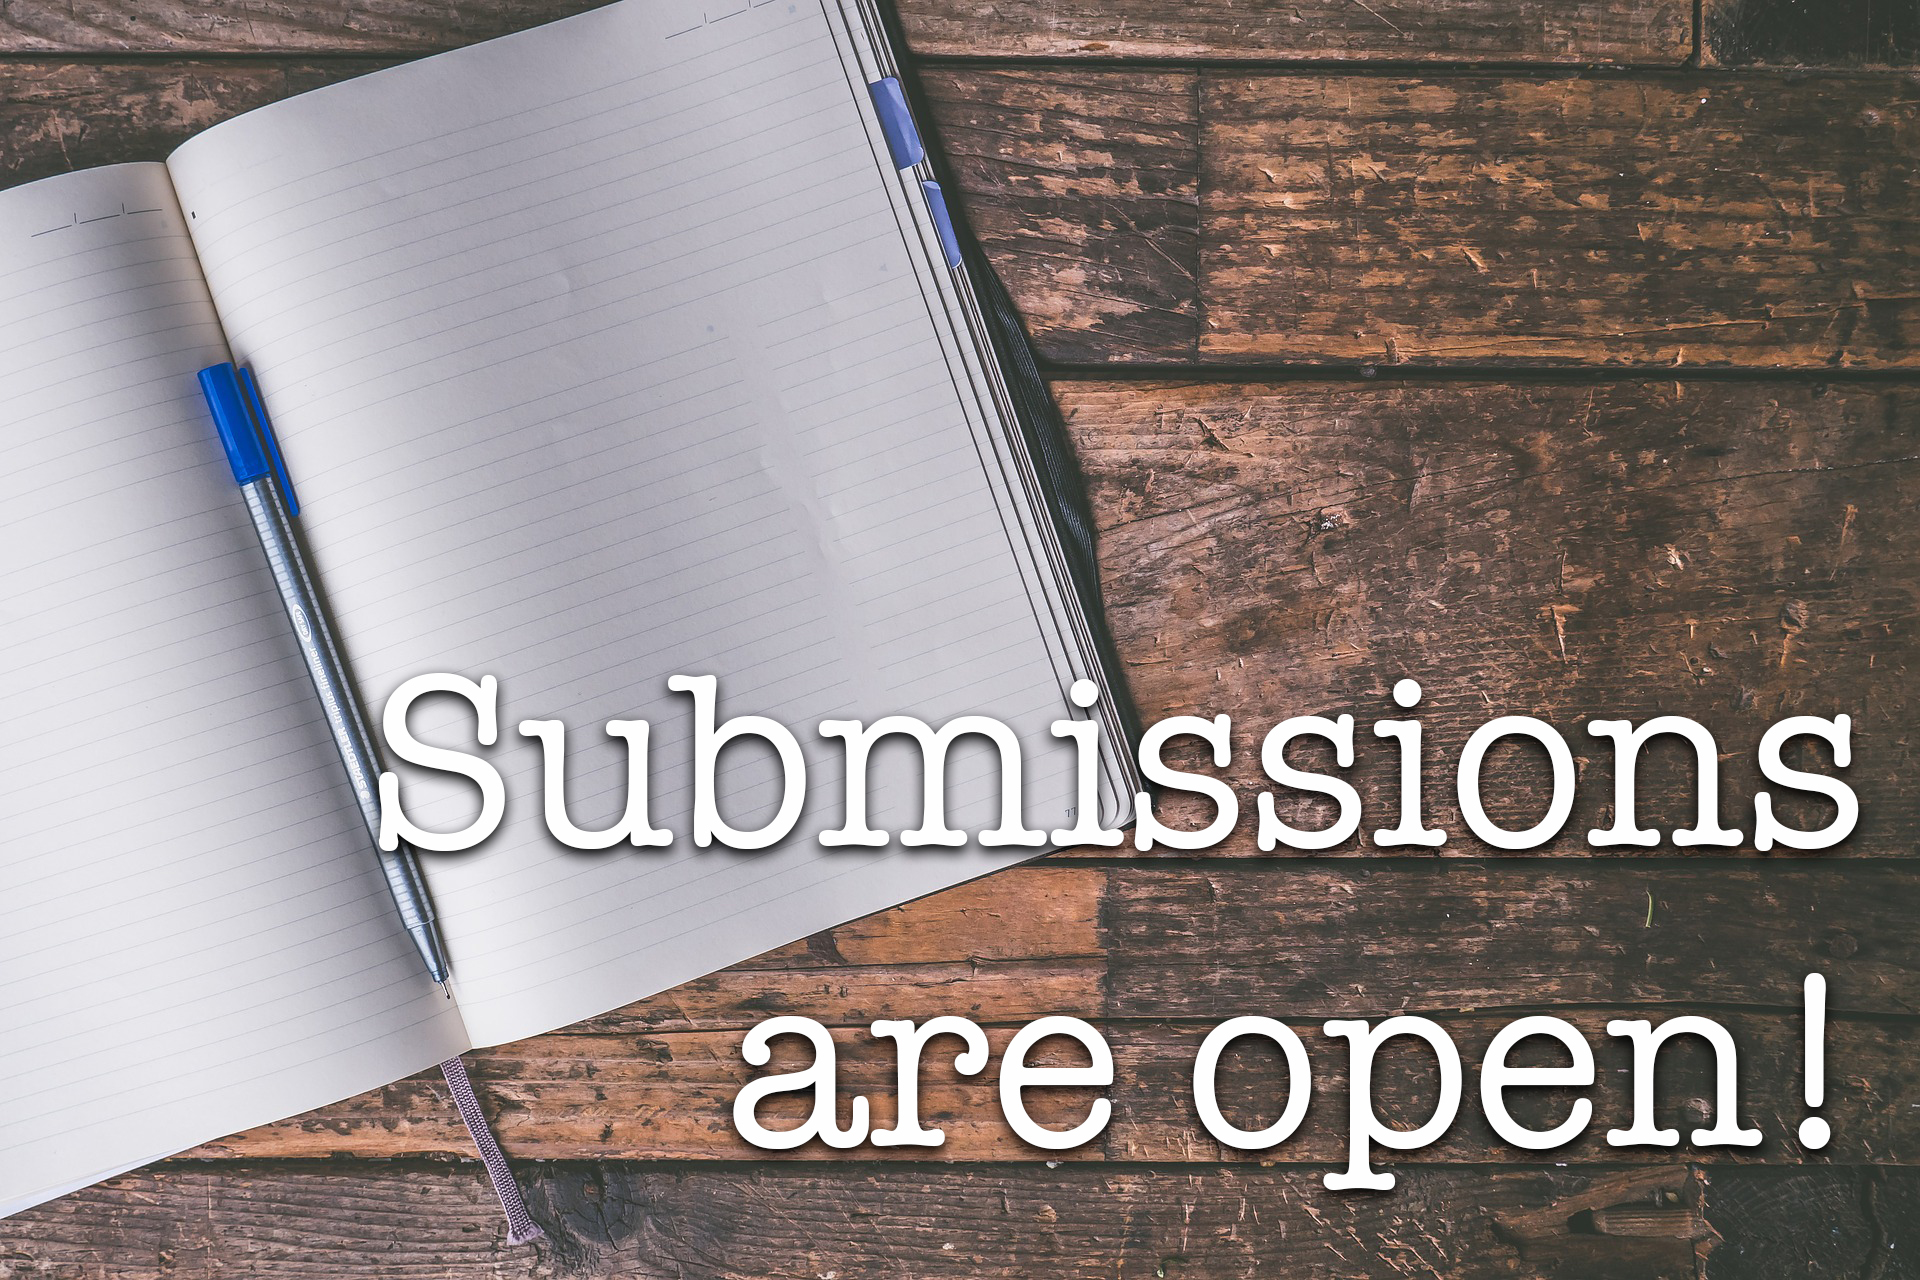 It's Submission Time Again